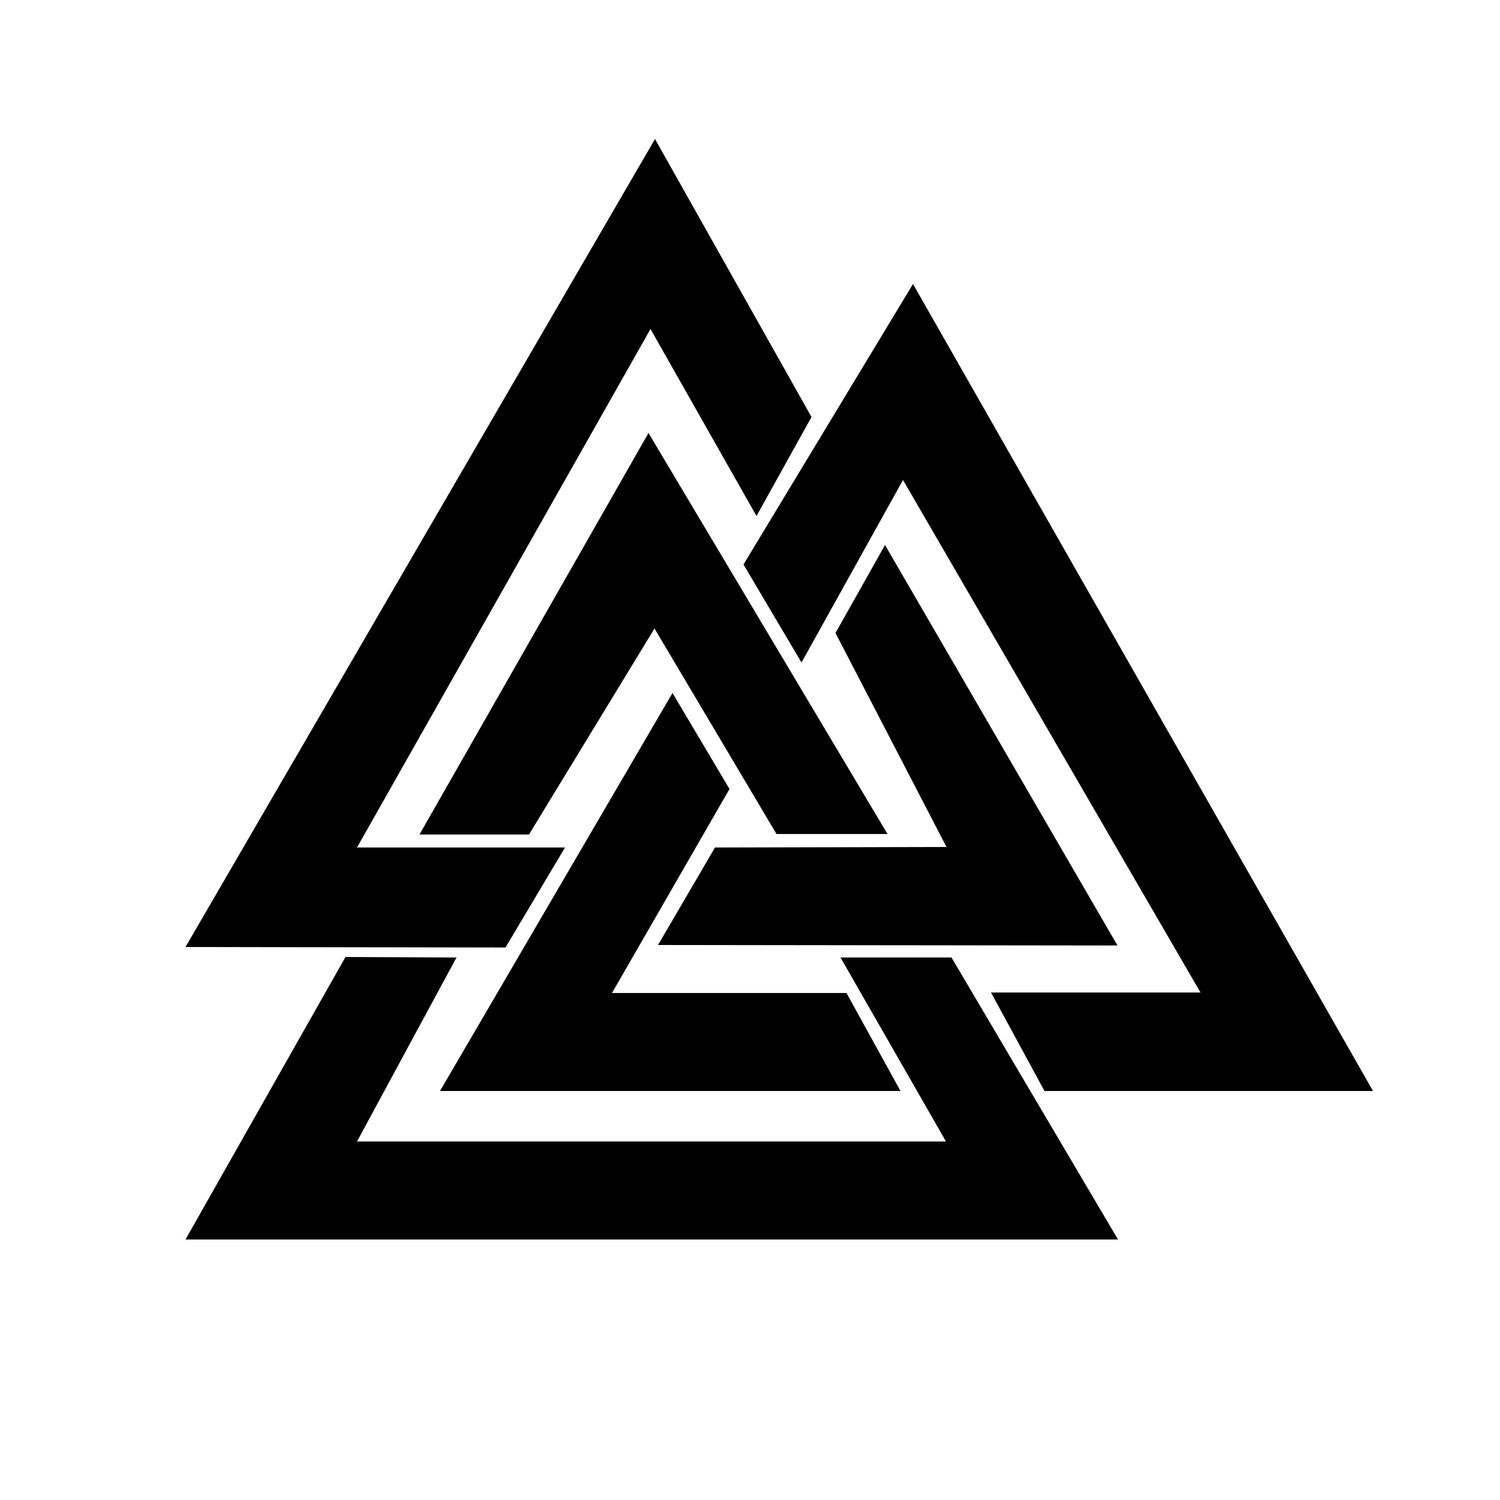 The valknut runic symbol the valknut was a runic symbol found in the valknut runic symbol the valknut was a runic symbol found in many of the norse rune carved standing stones throughout scandinavia a valknut i biocorpaavc Image collections